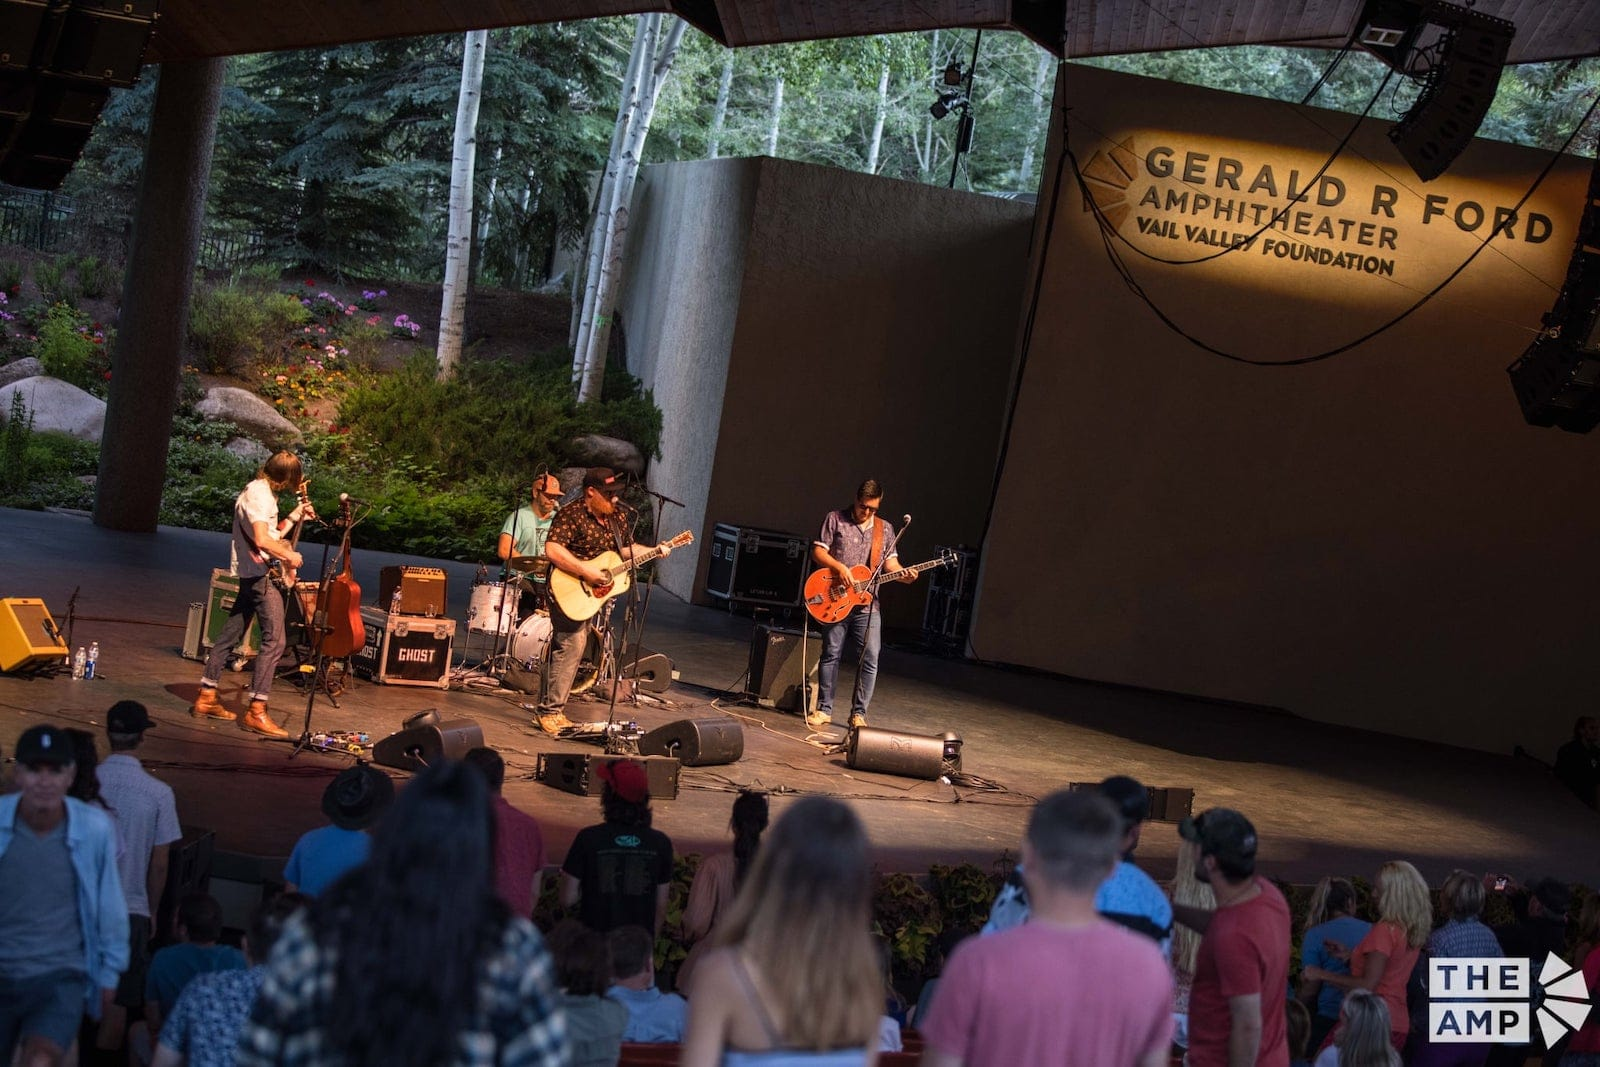 Image of a band performing at the Gerald R. Ford Amphitheater in Vail, Colorado